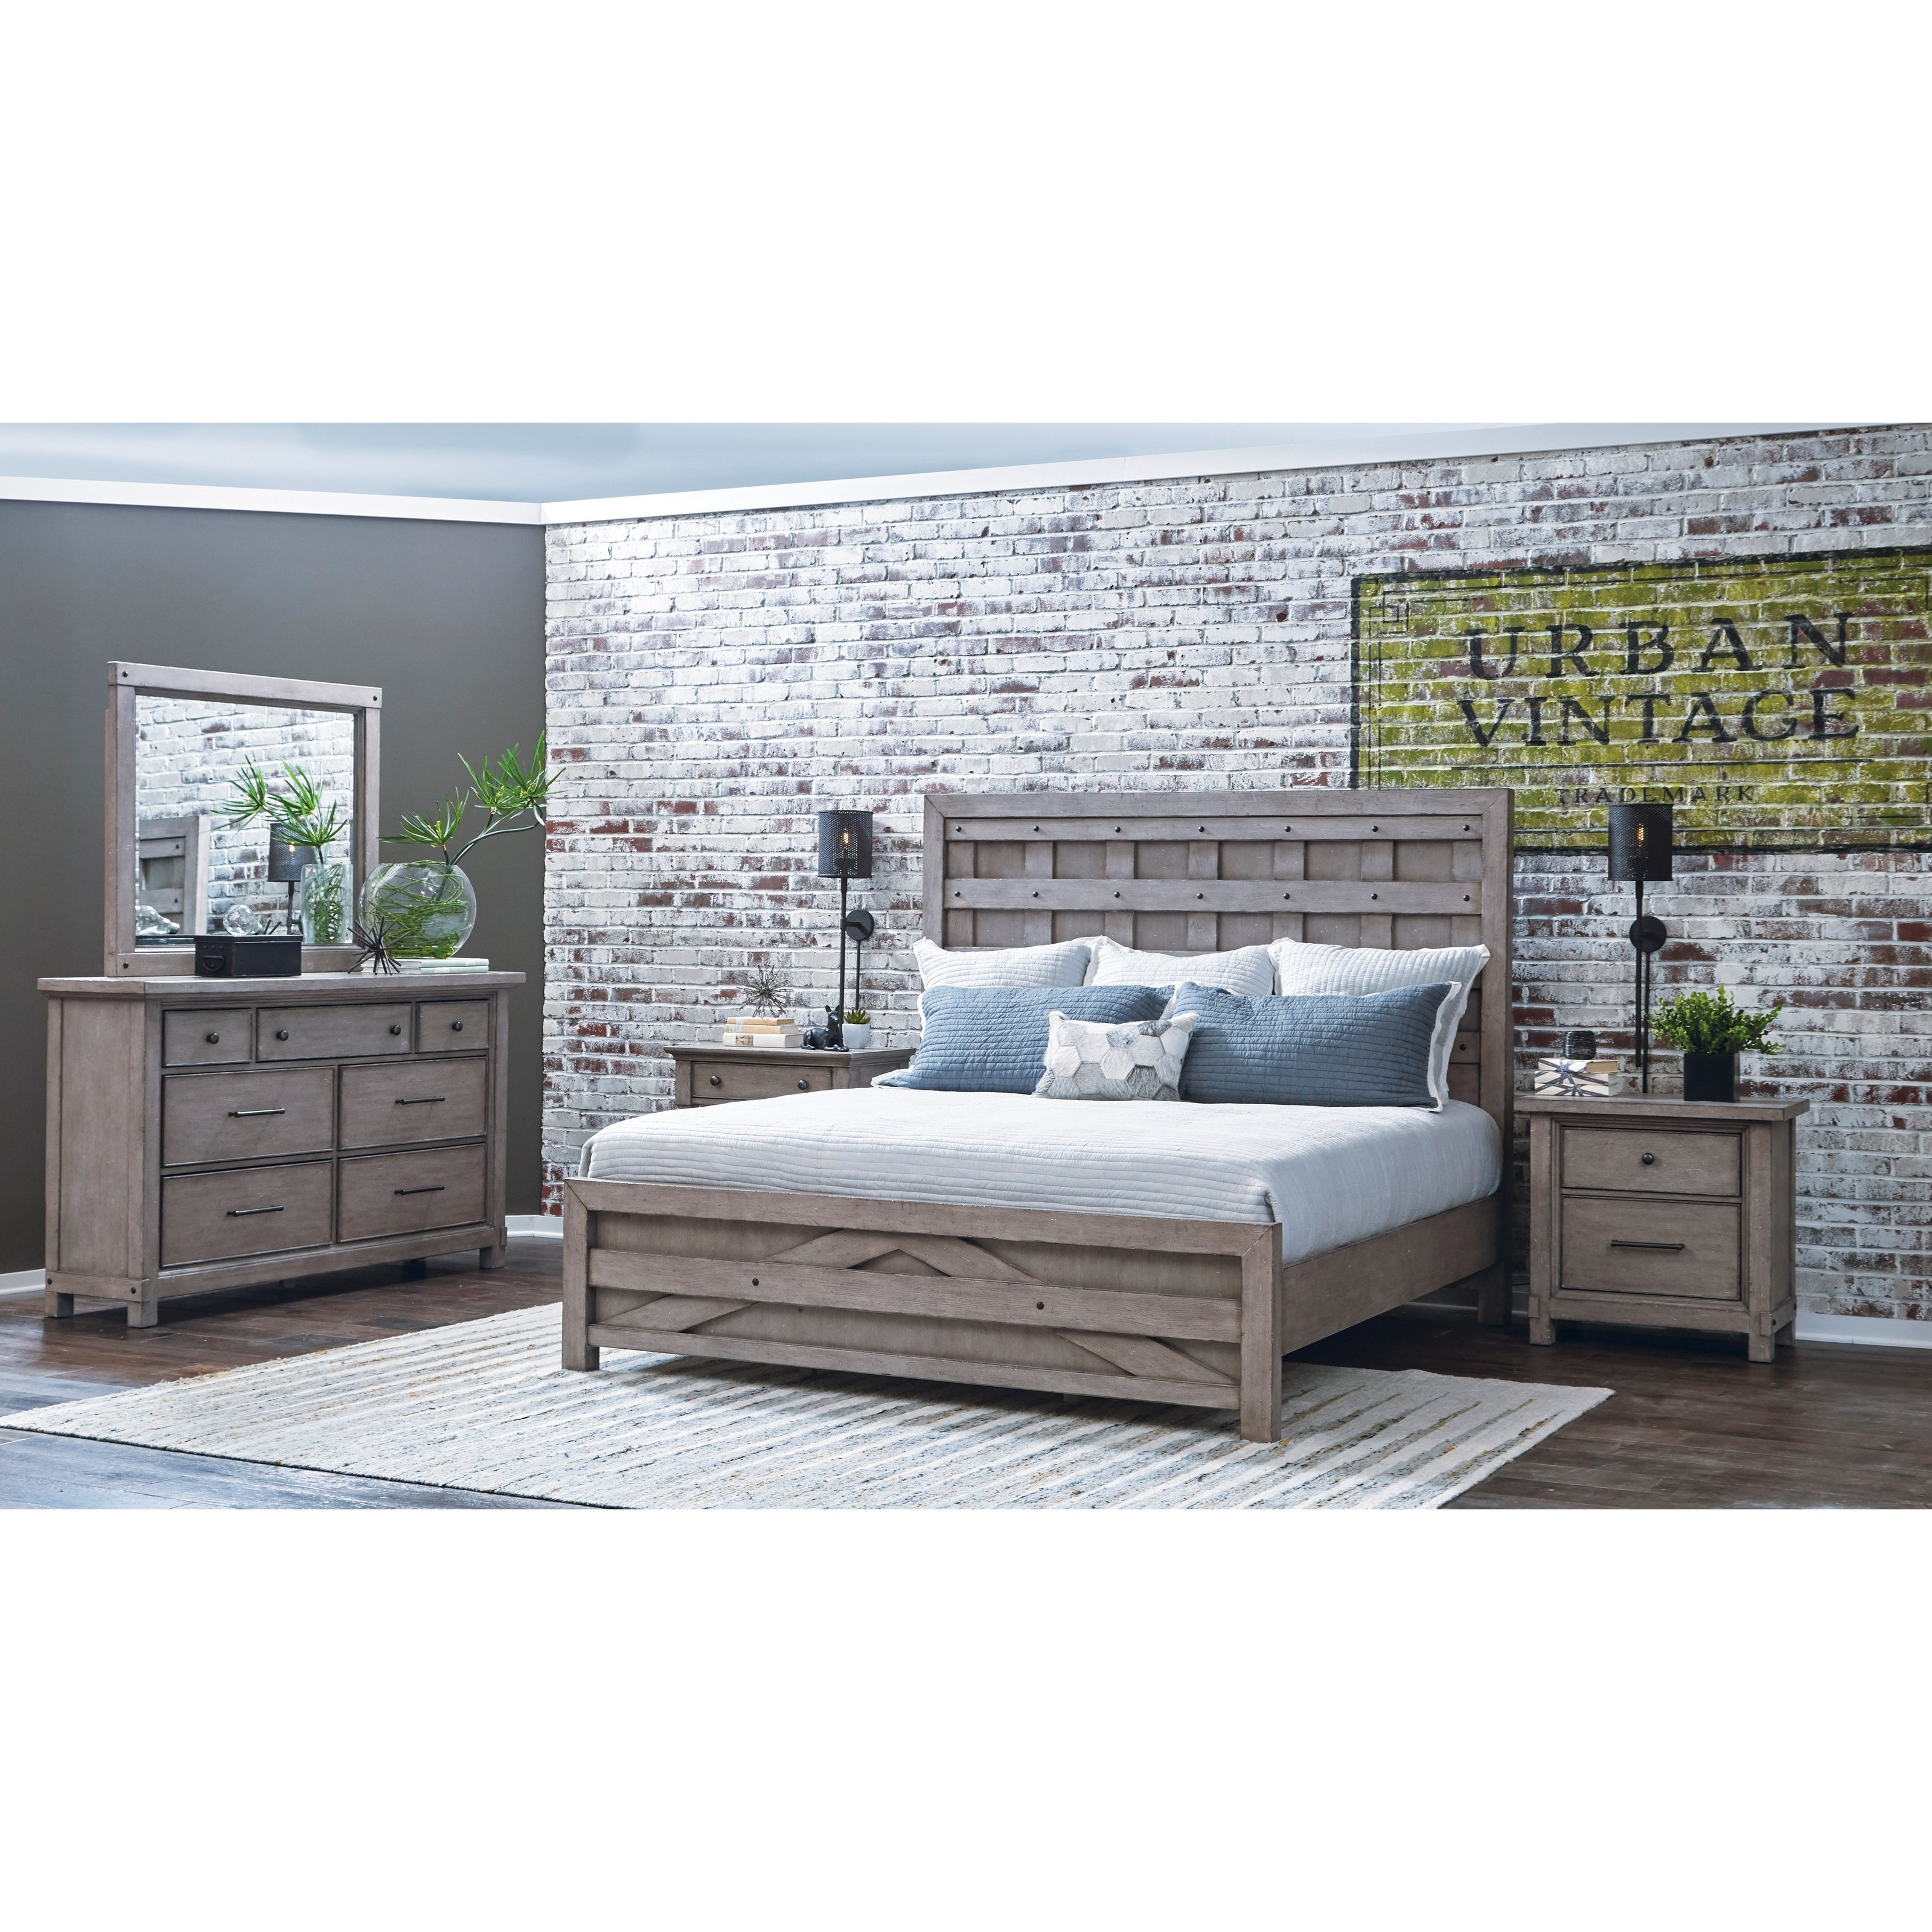 Samuel lawrence prospect hill queen pallet bed and bolt for Bedroom furniture 37027